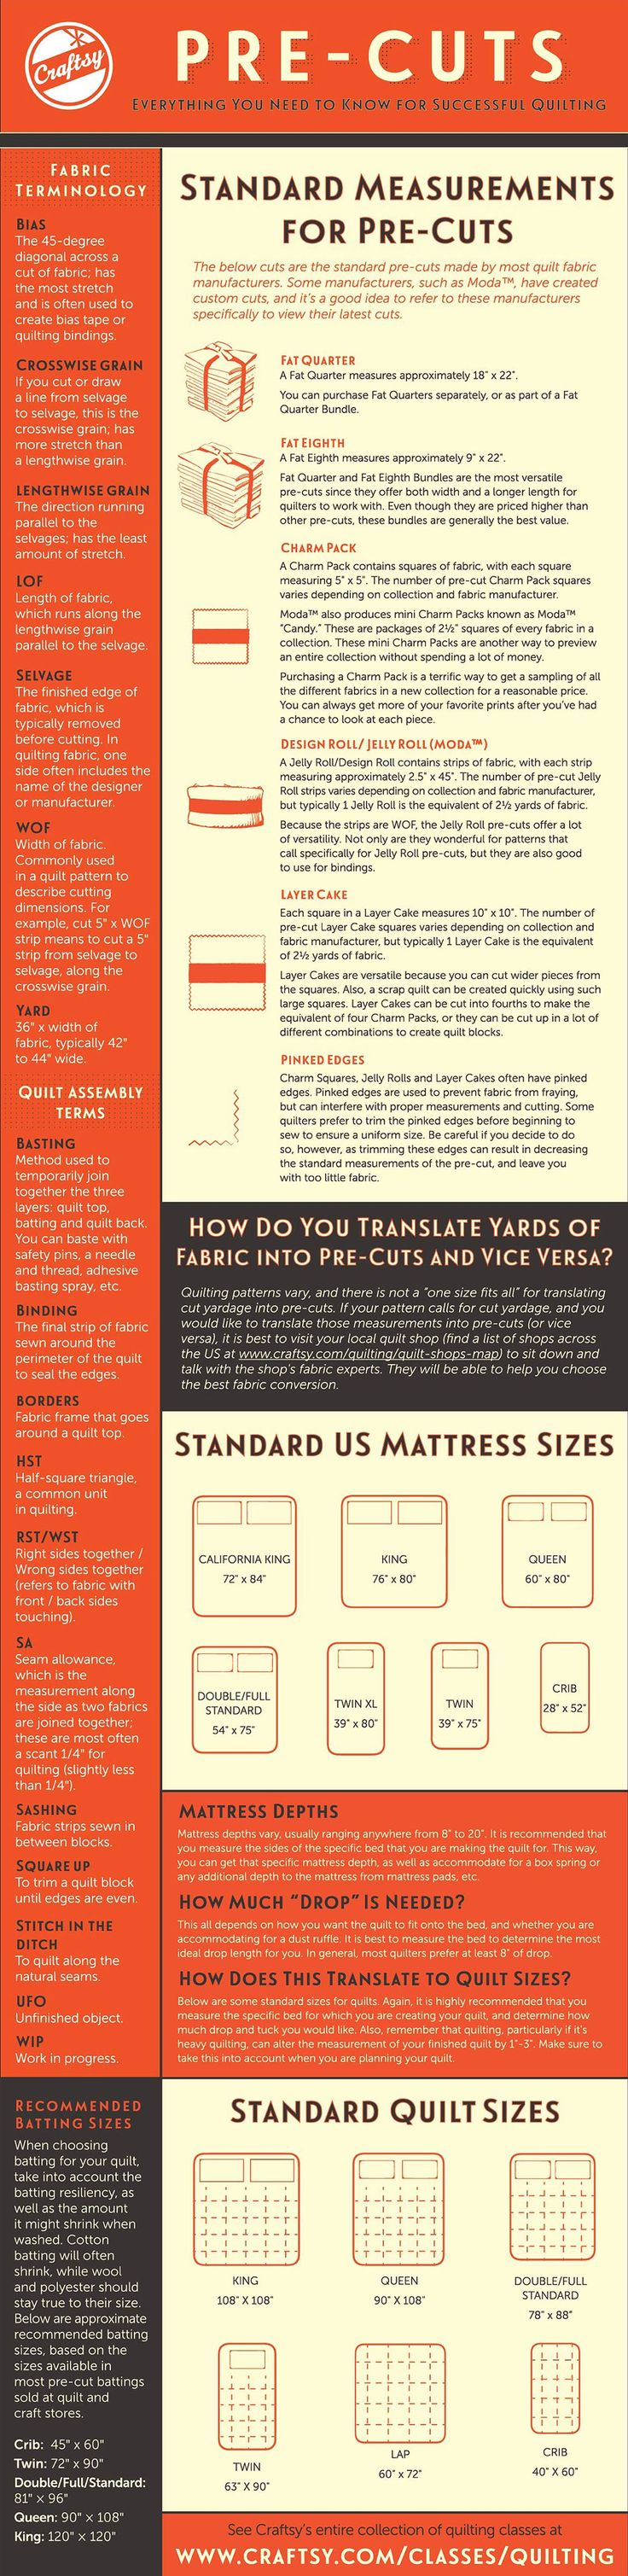 Lots of useful information from this Craftsy printout.